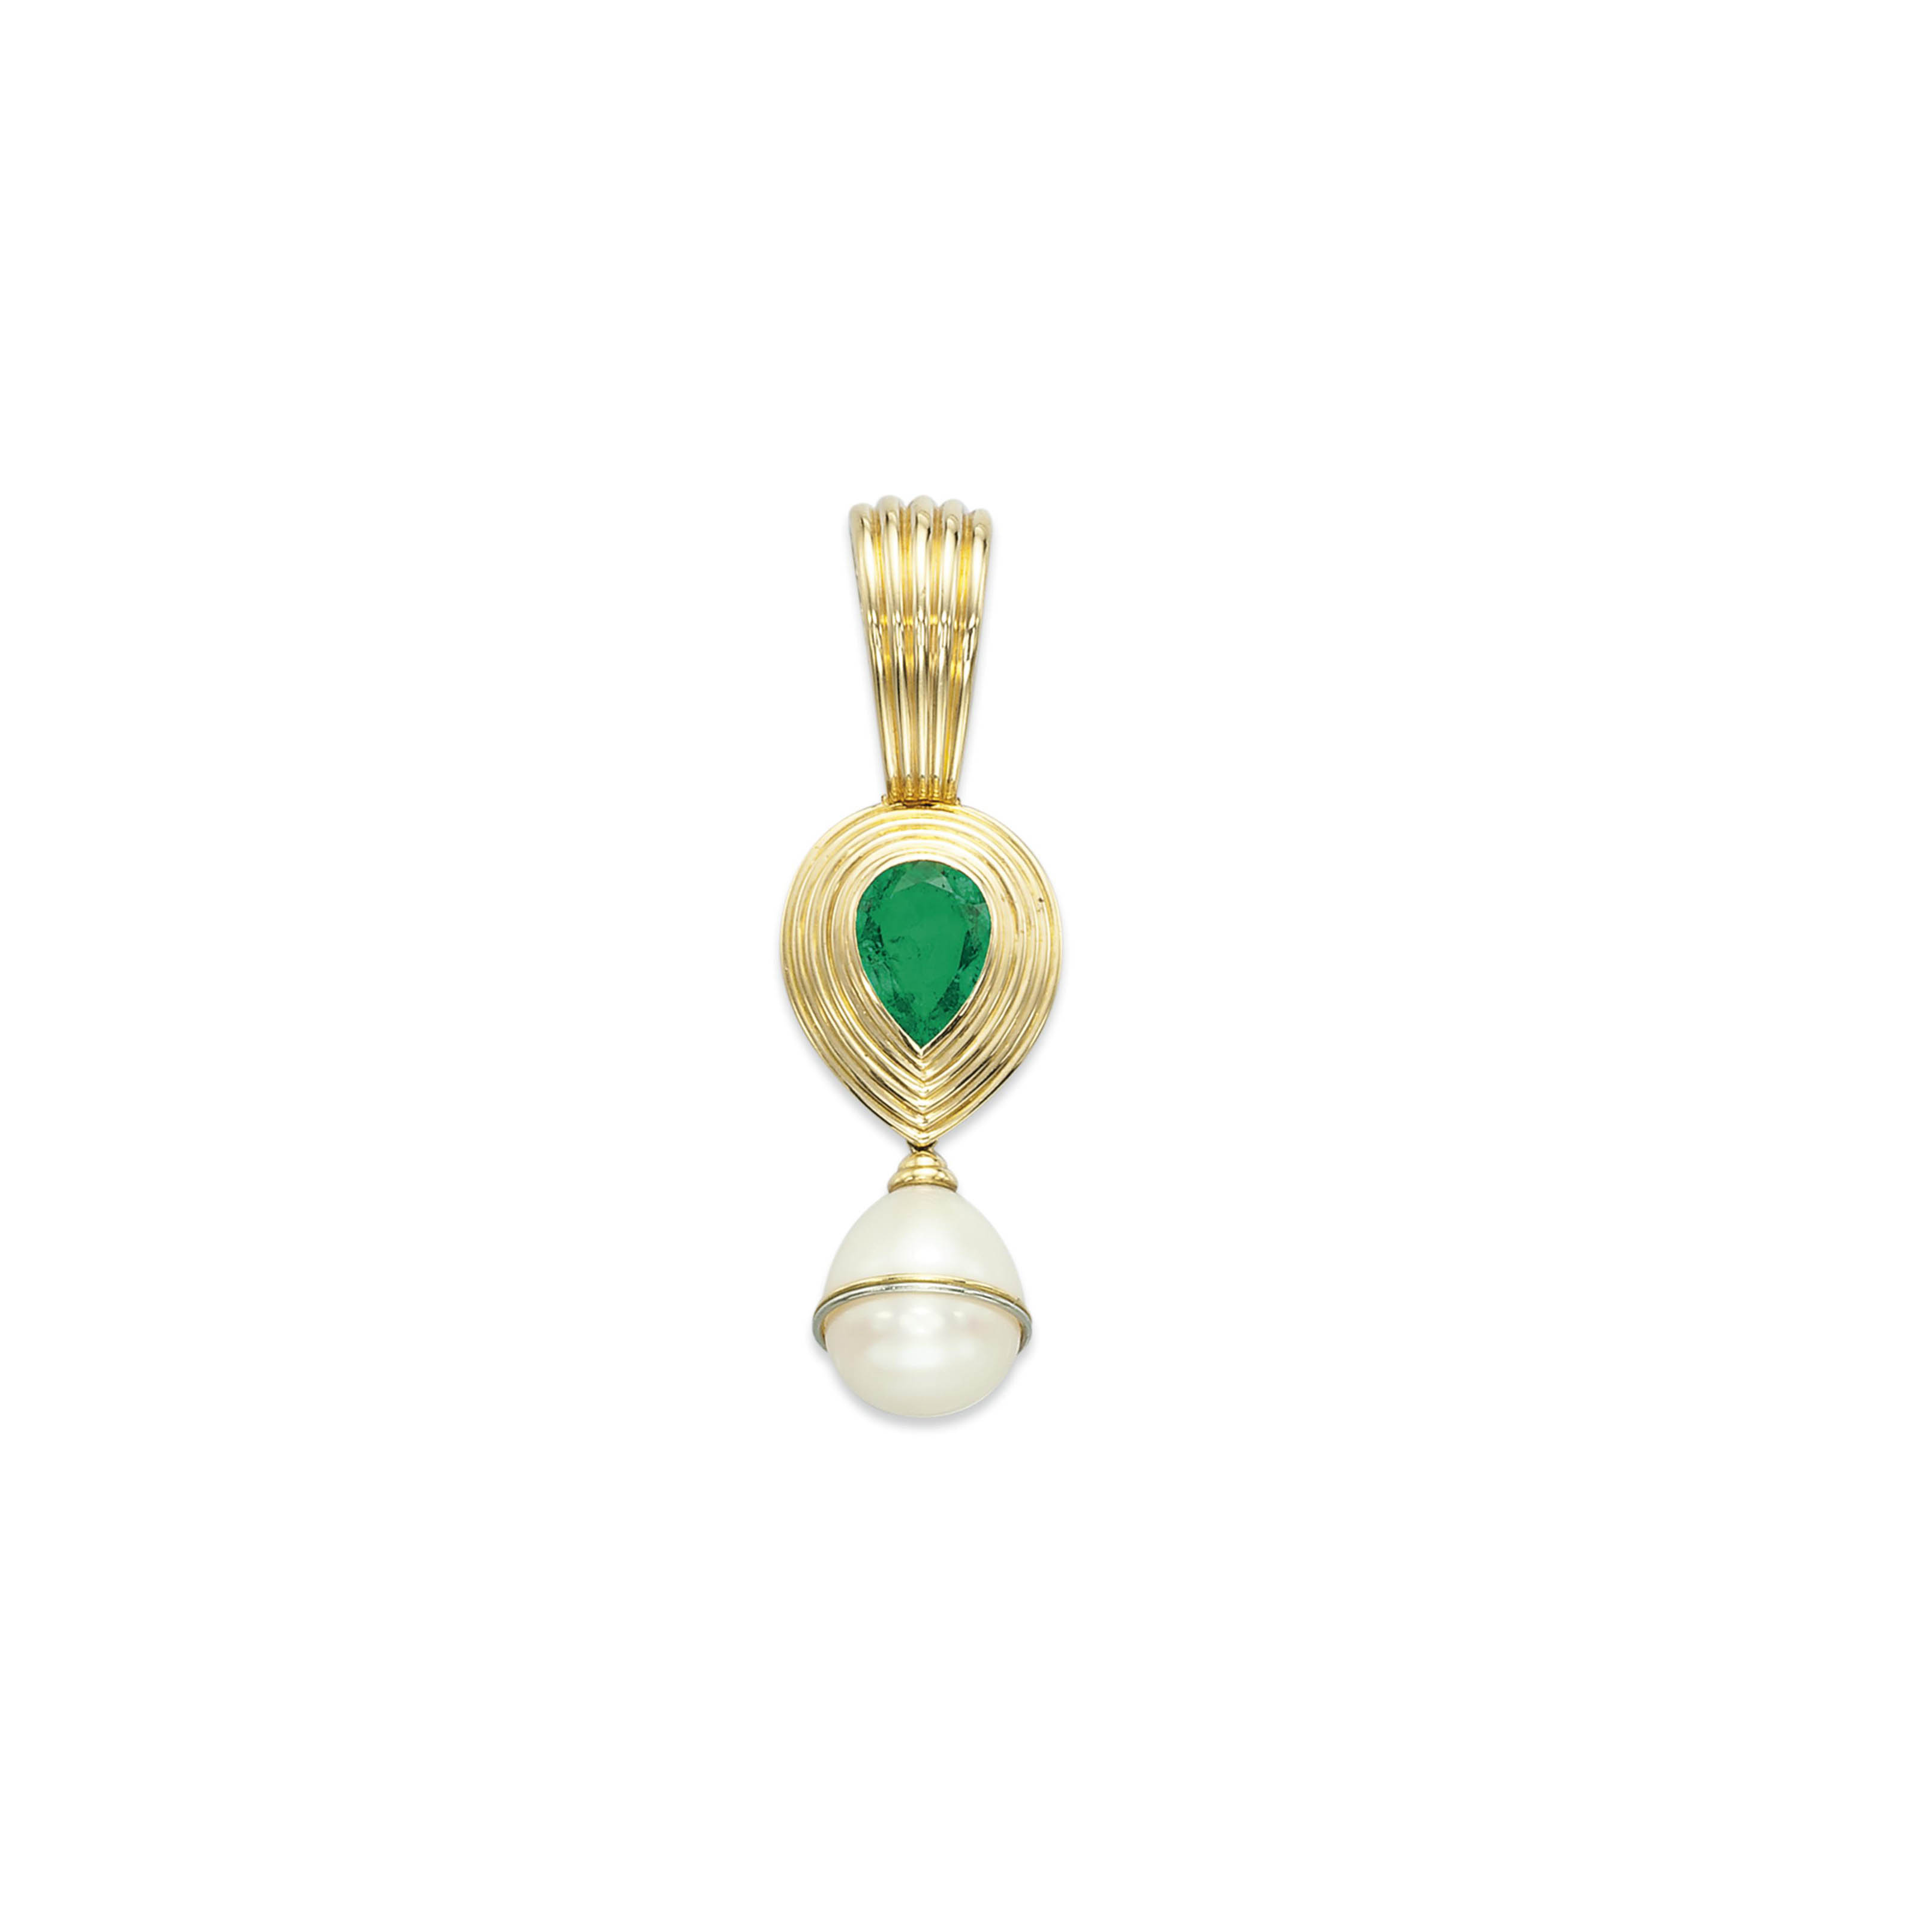 AN EMERALD AND CULTURED PEARL PENDANT, BY POIRAY